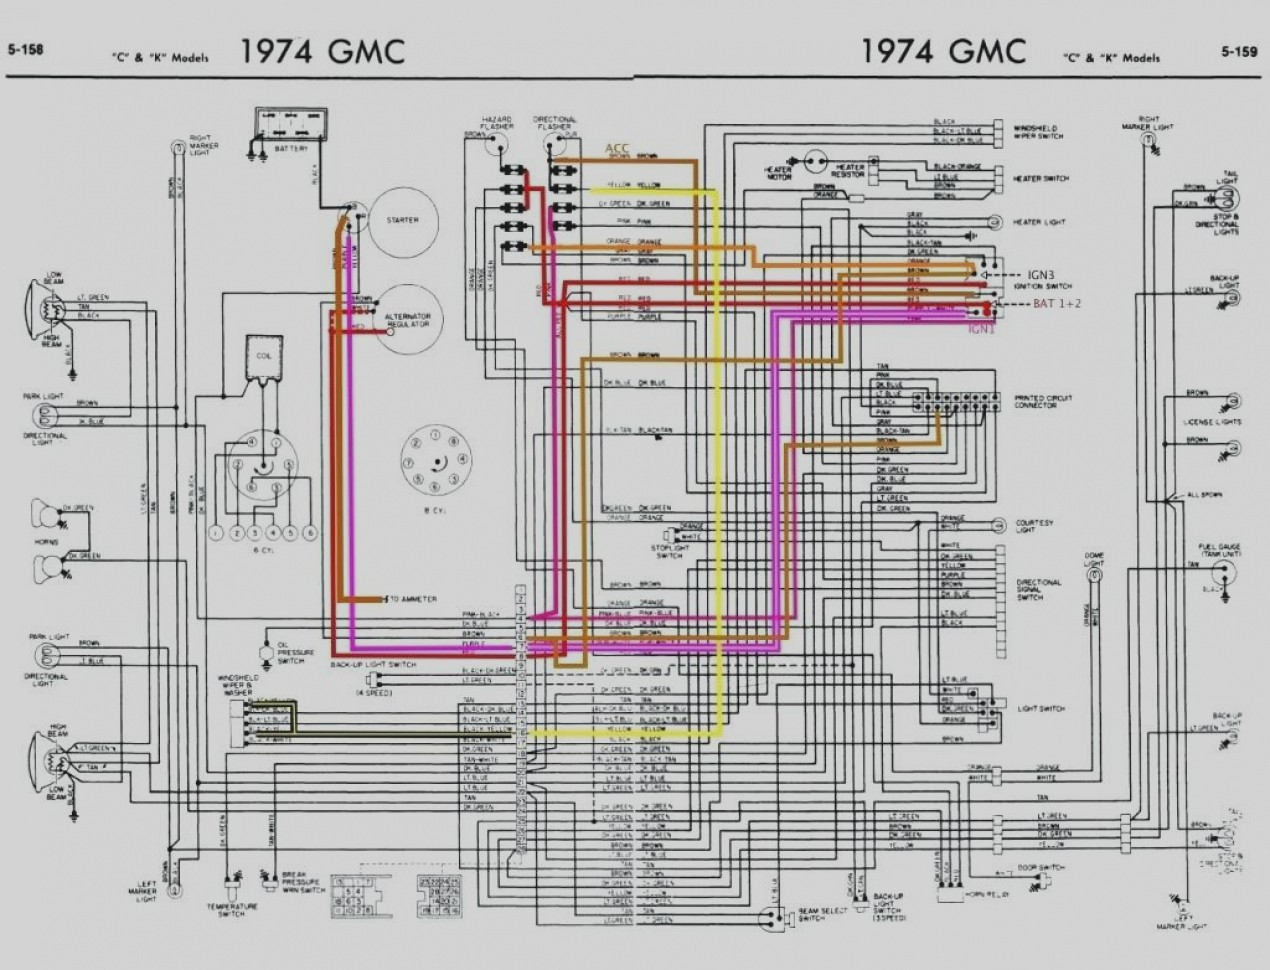 1972 avion wiring diagram wiring diagram rh vw33 vom winnenthal de